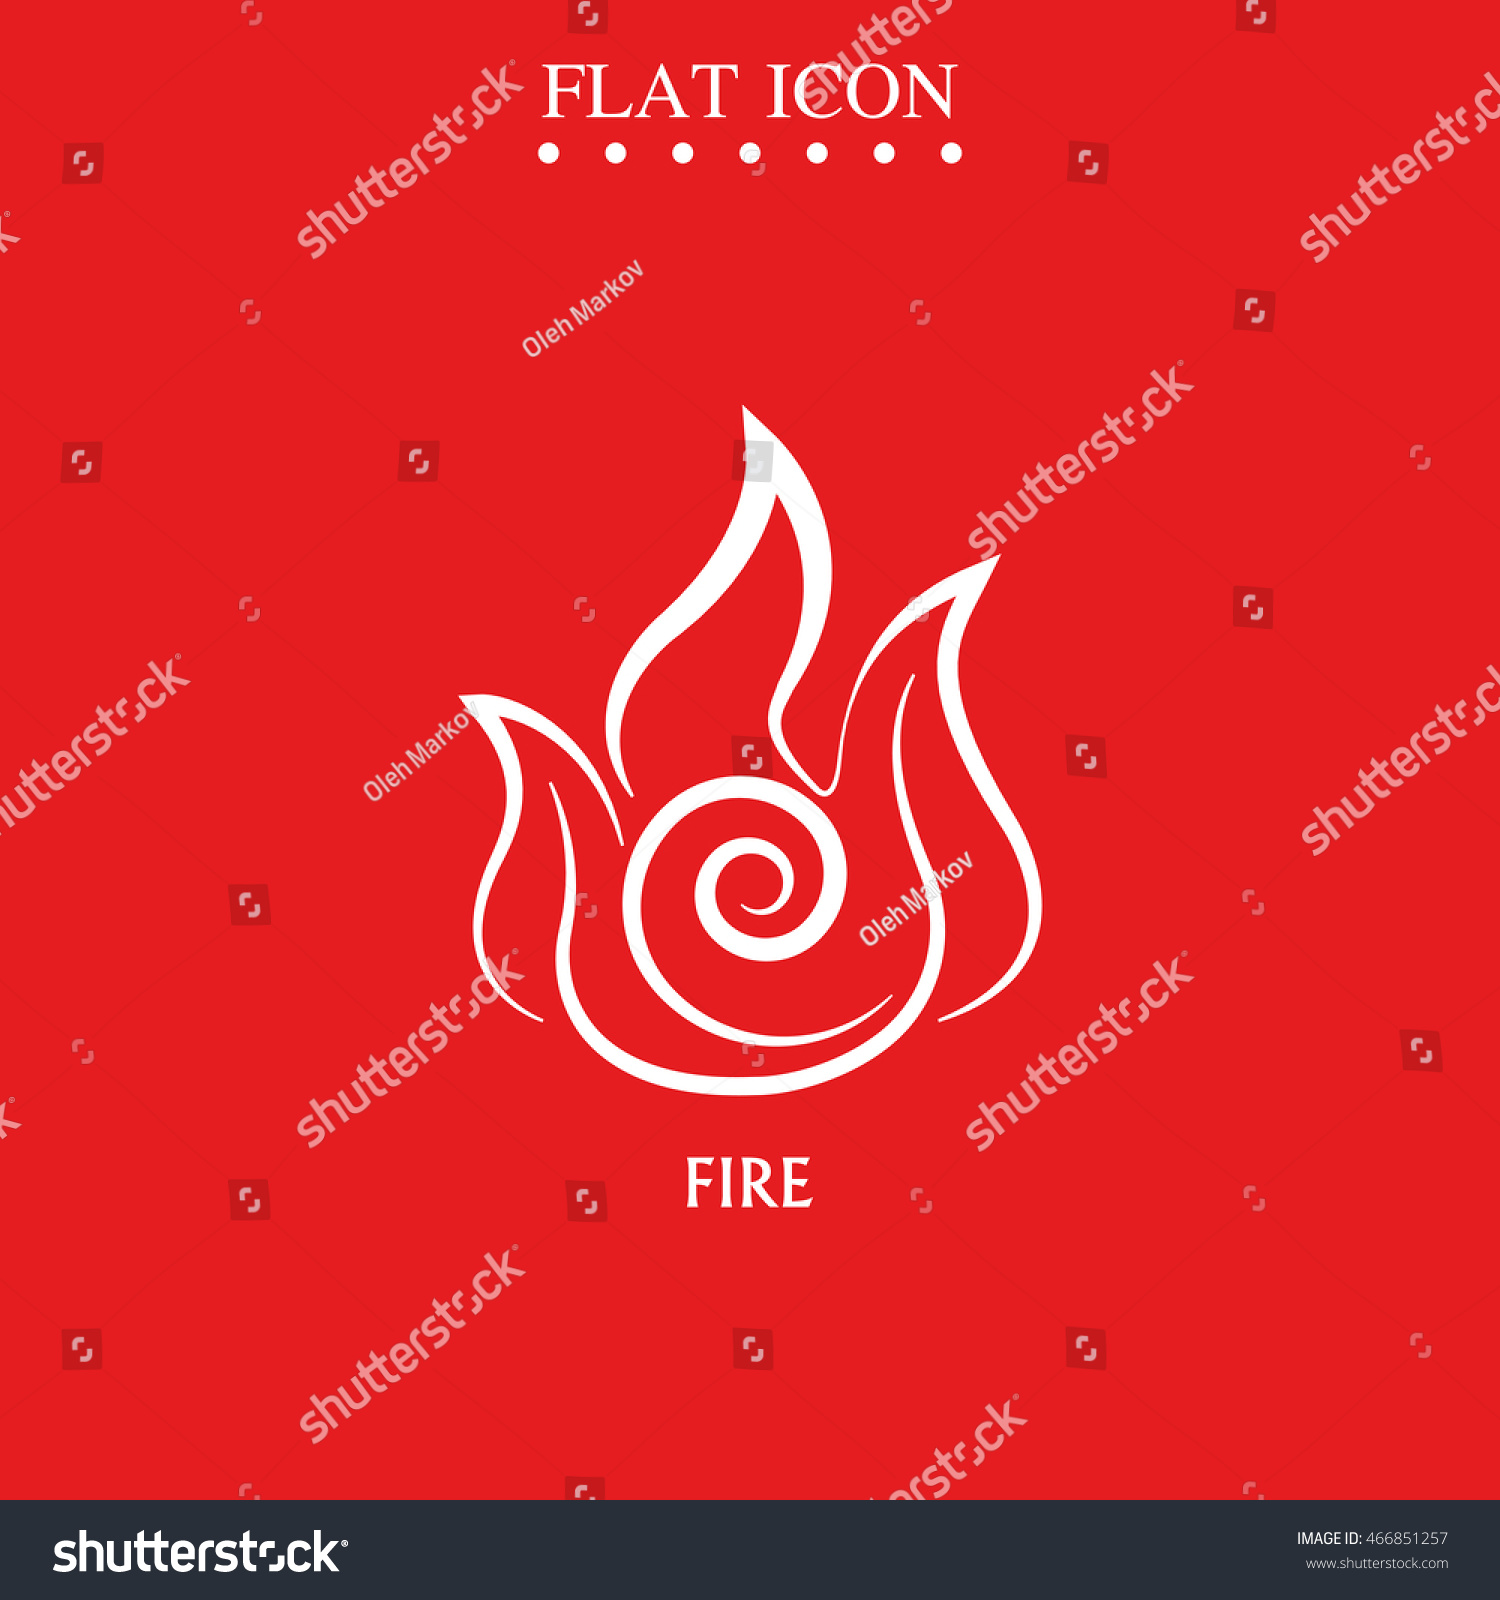 Ancient symbol fire element subscribe stock vector 466851257 ancient symbol of fire element with subscribe buycottarizona Images